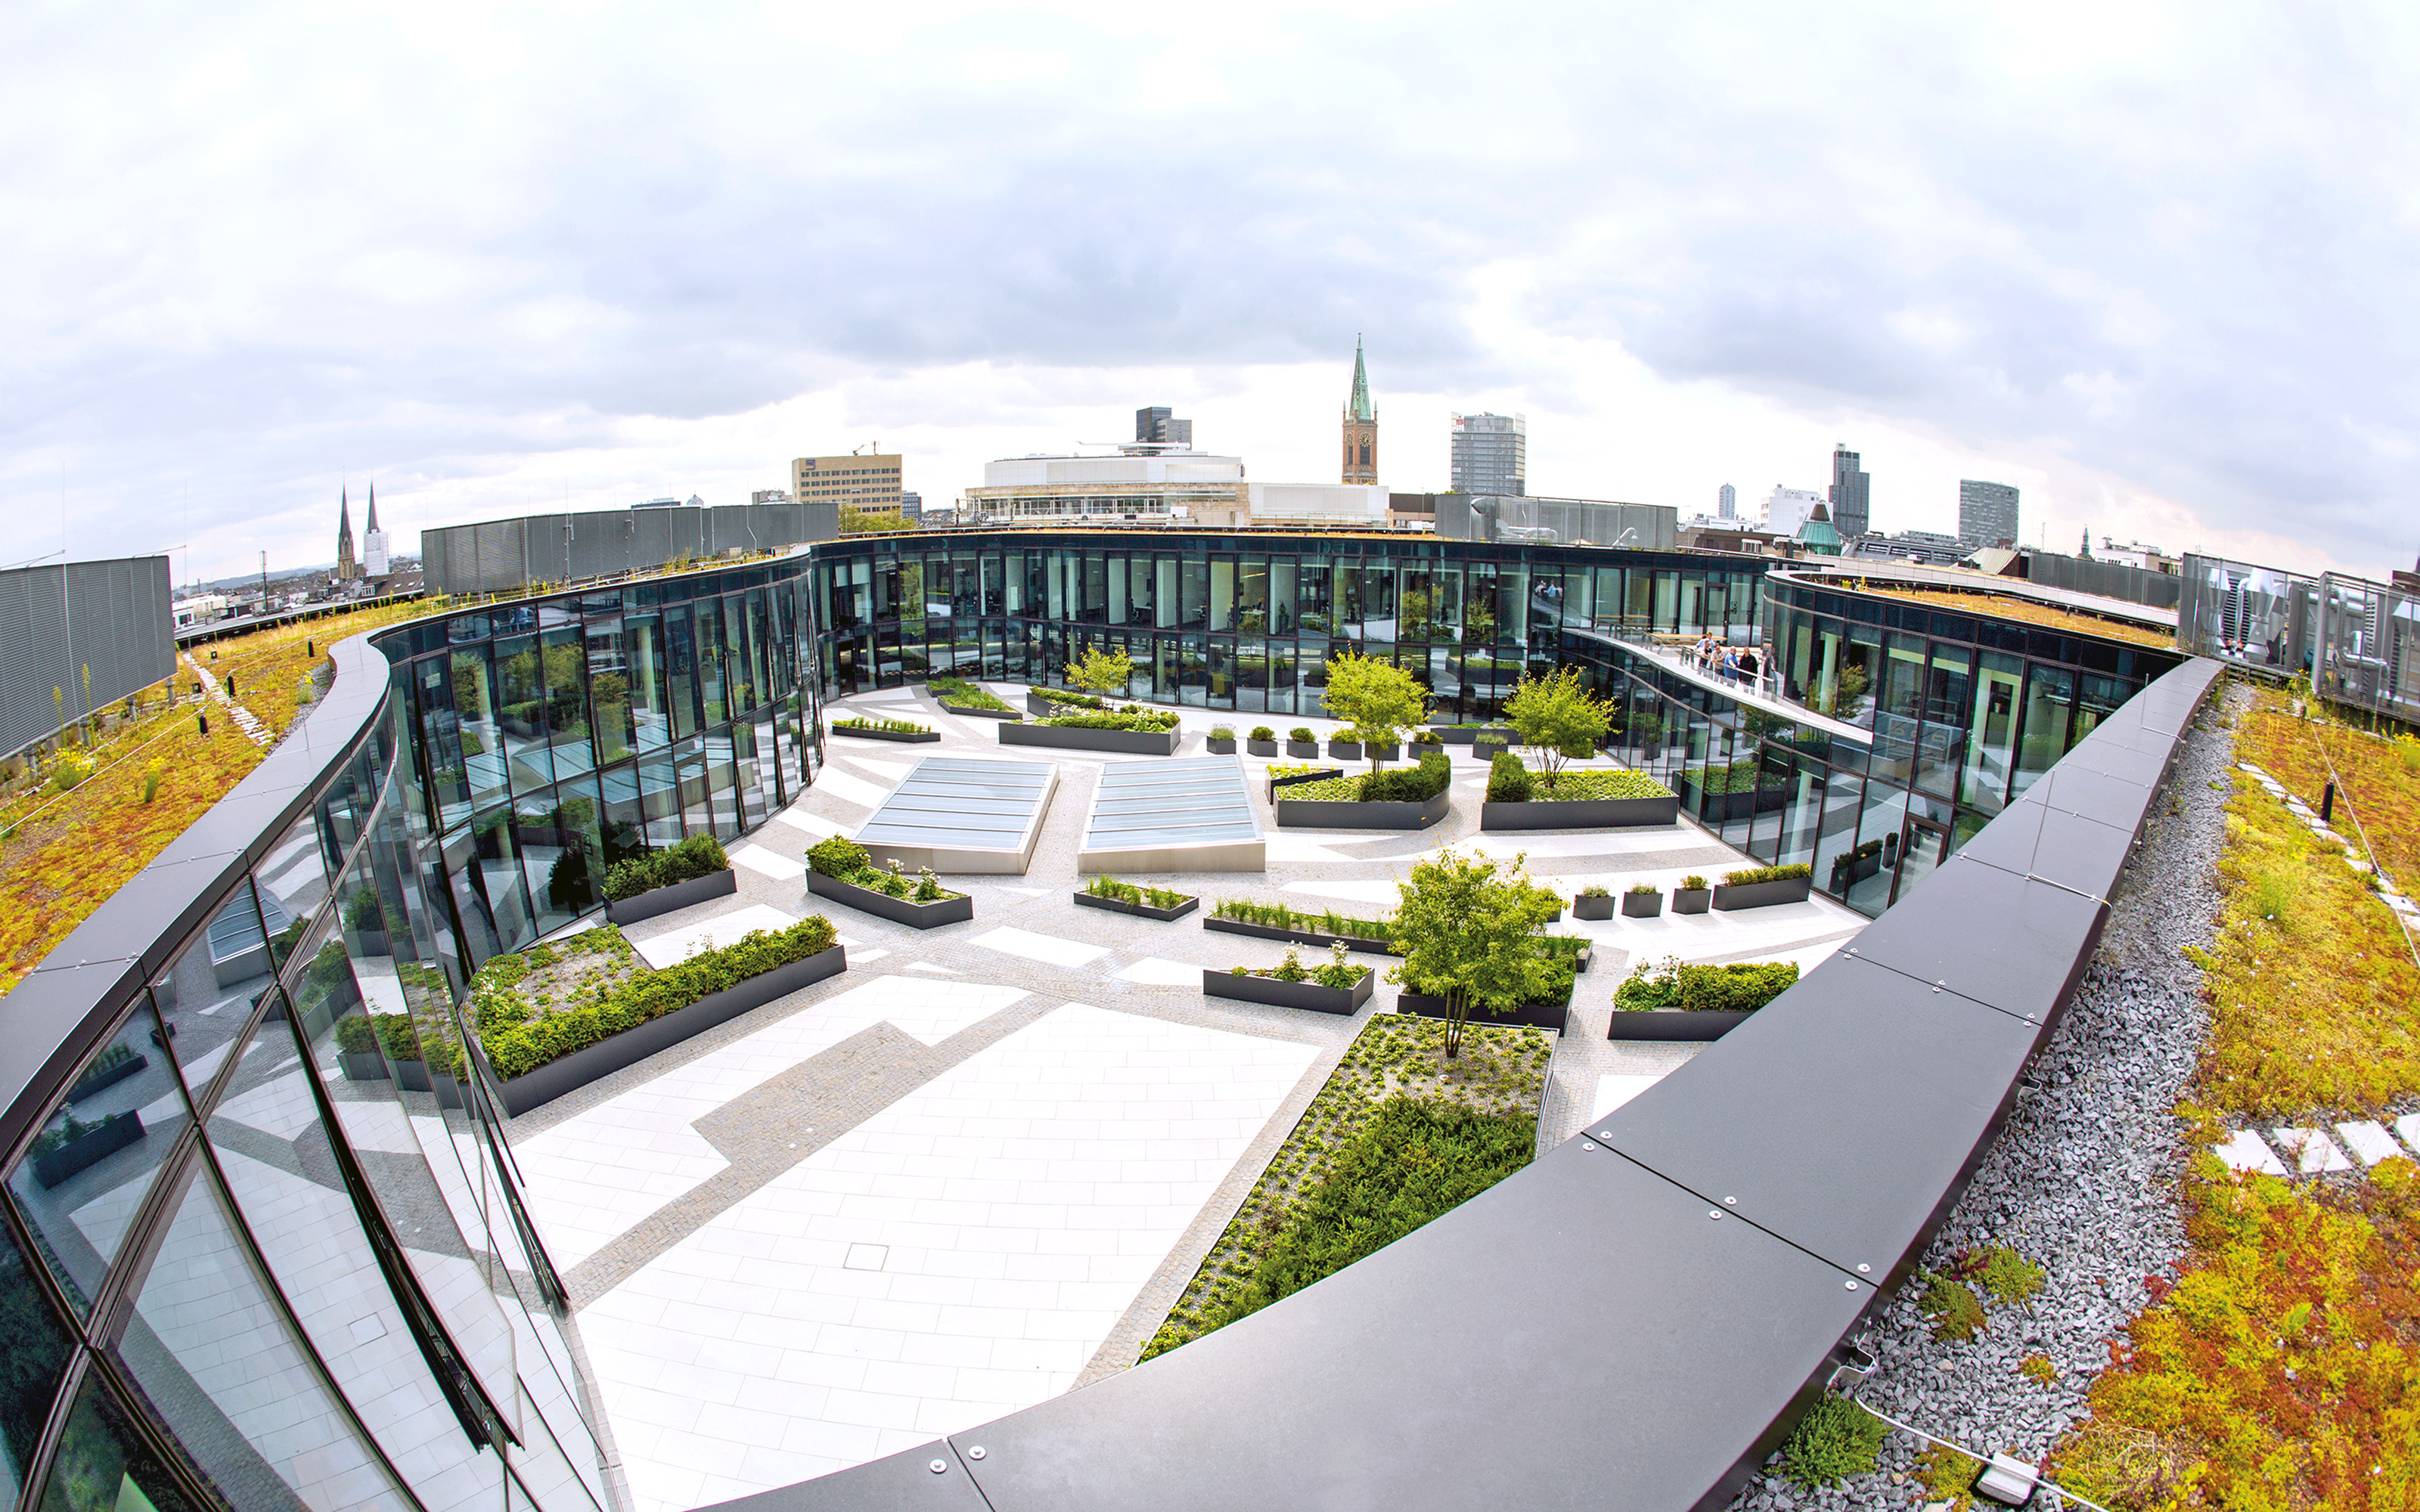 Green roofs planted with Sedum and view into the courtyard from above